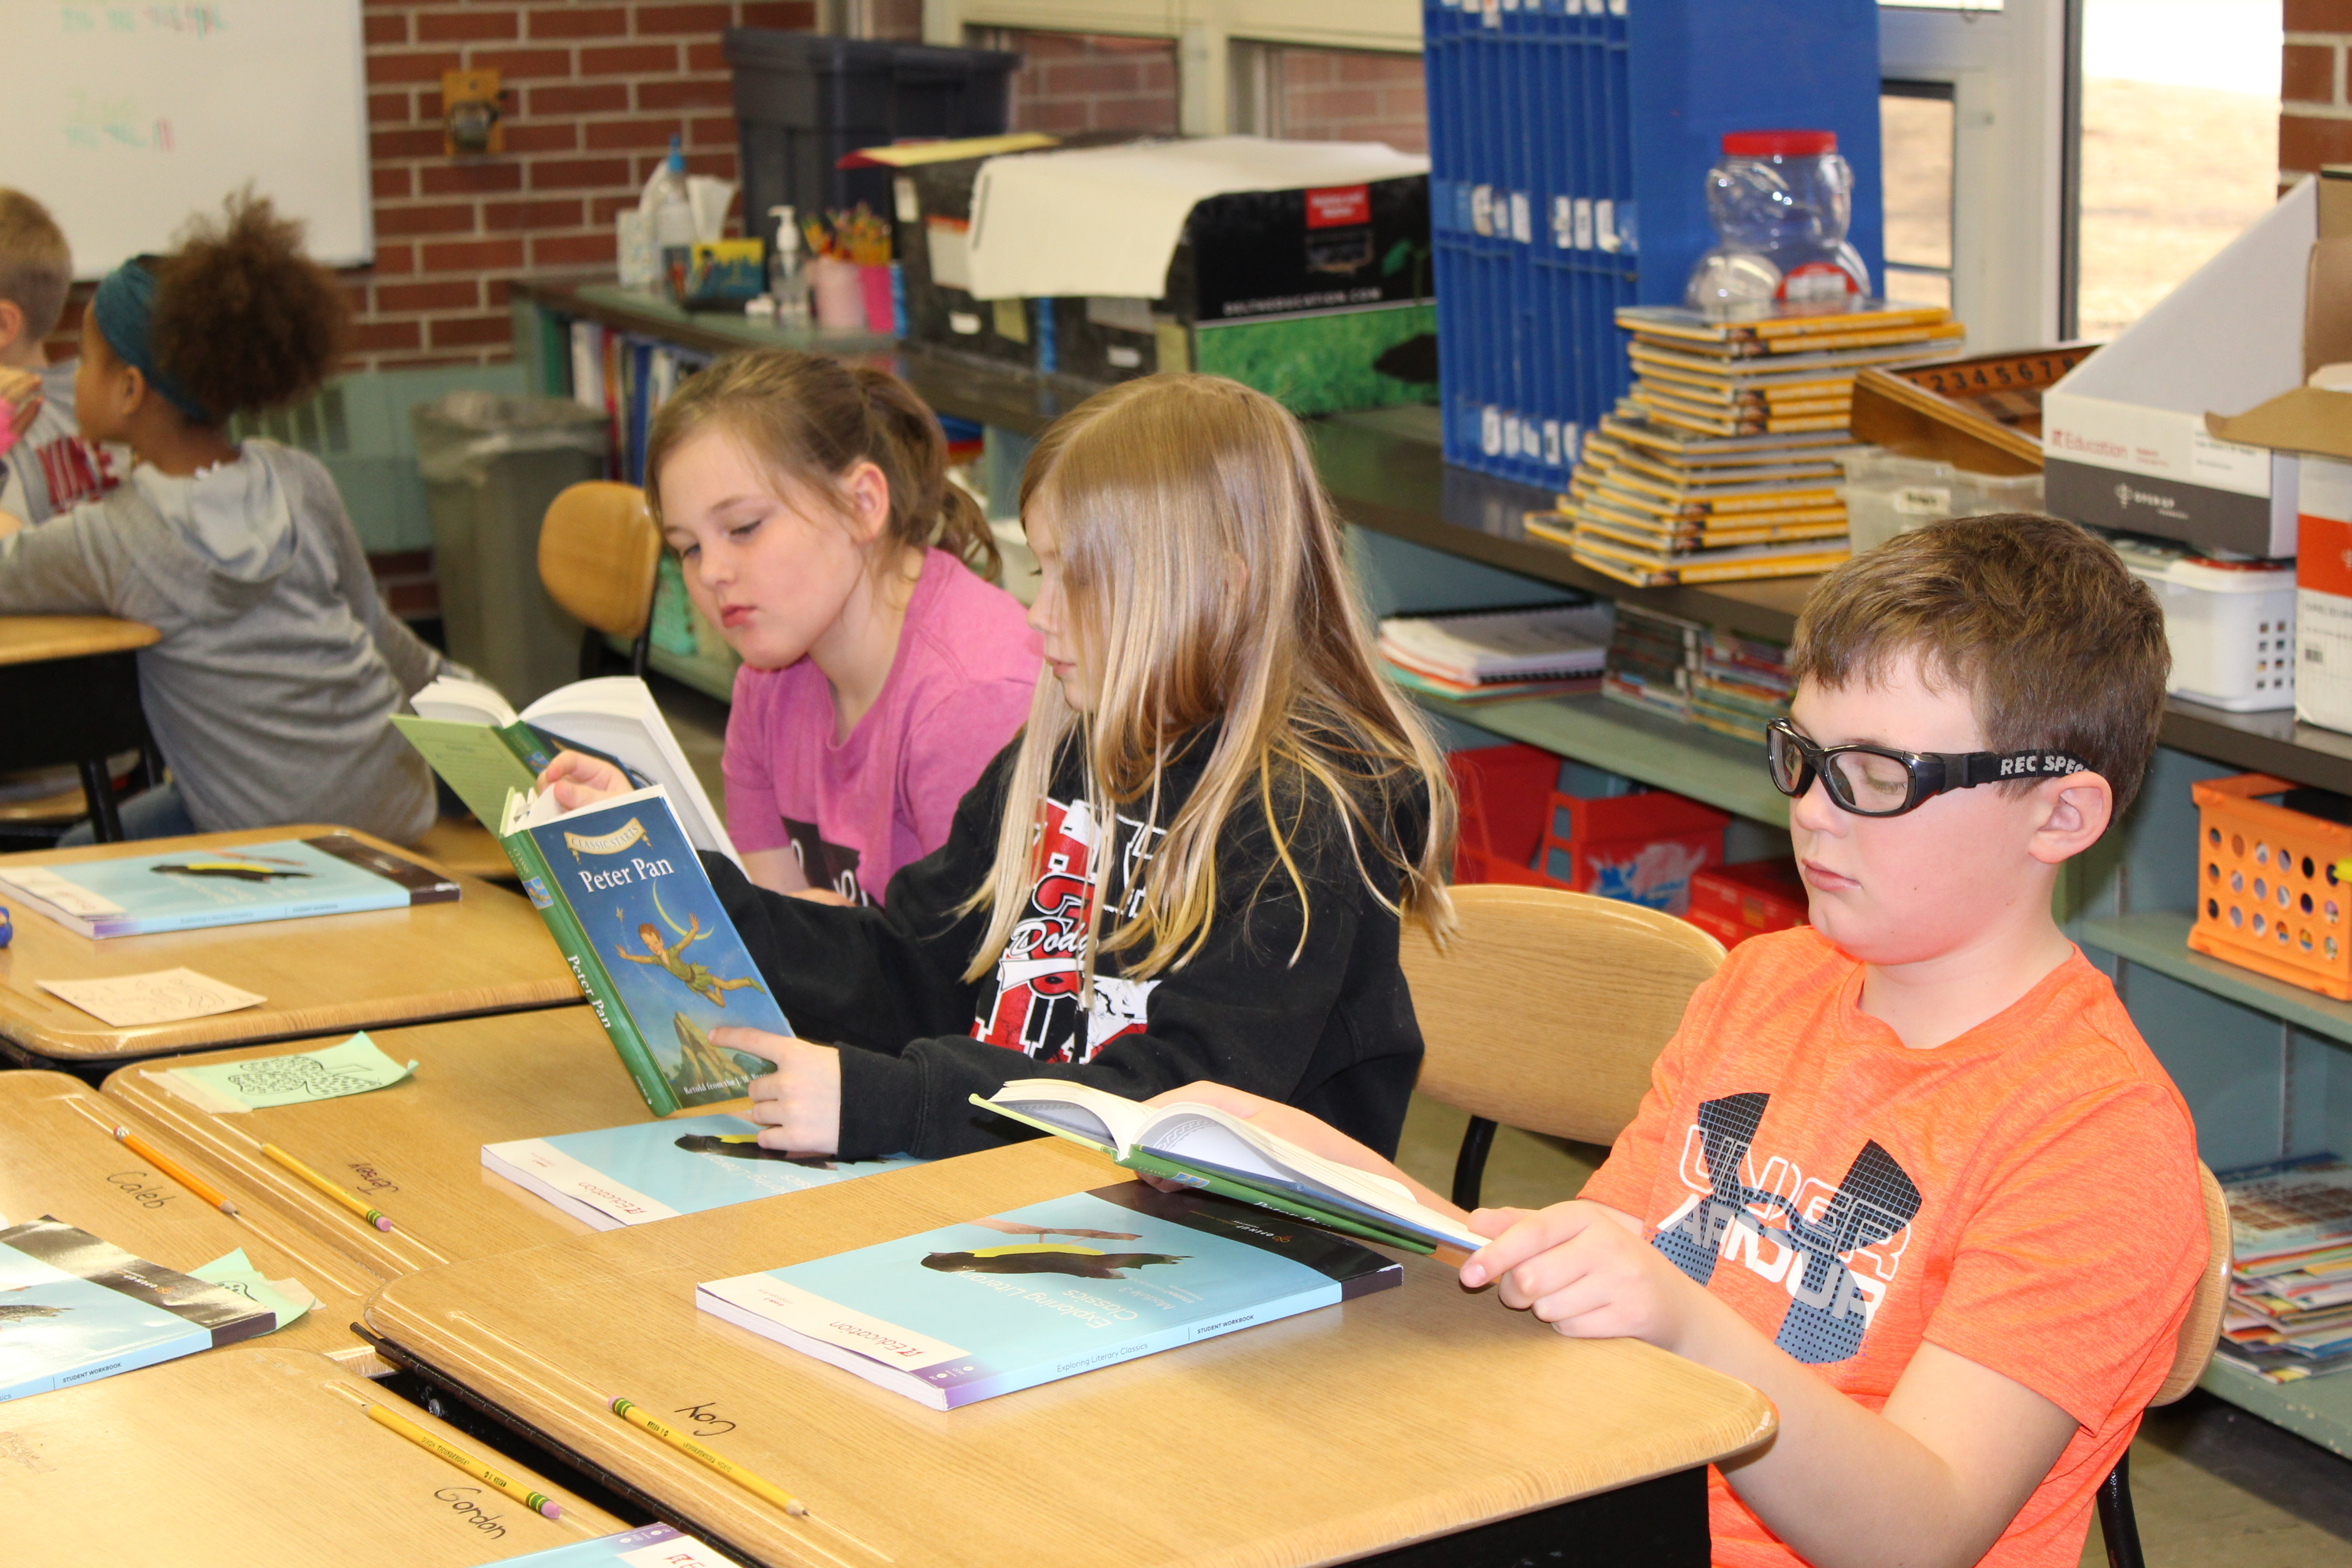 students reading at desks